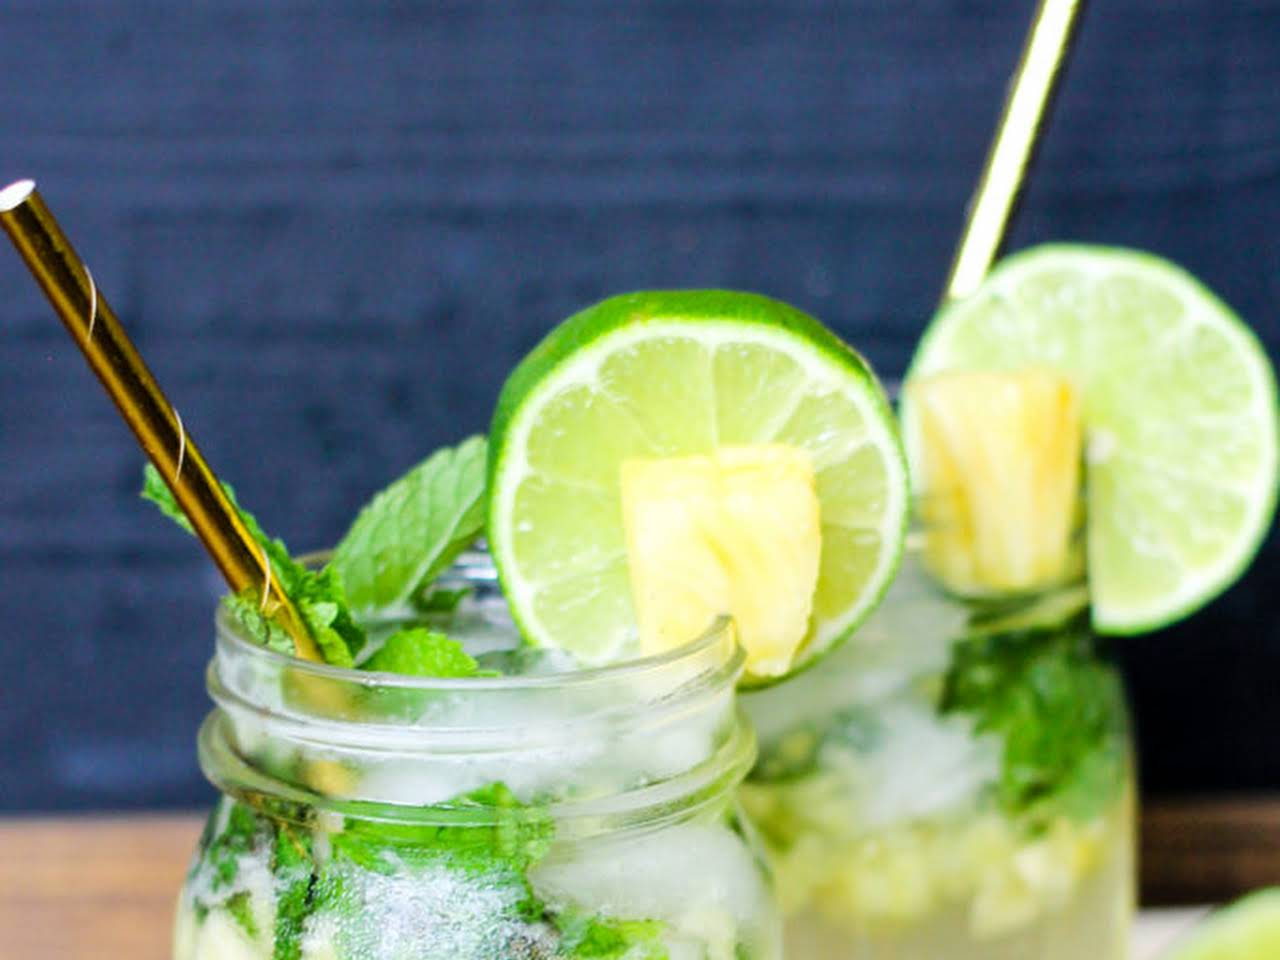 10 Best Jalapeno Simple Syrup Recipes Yummly,Questions To Ask When Buying A House For Sale By Owner